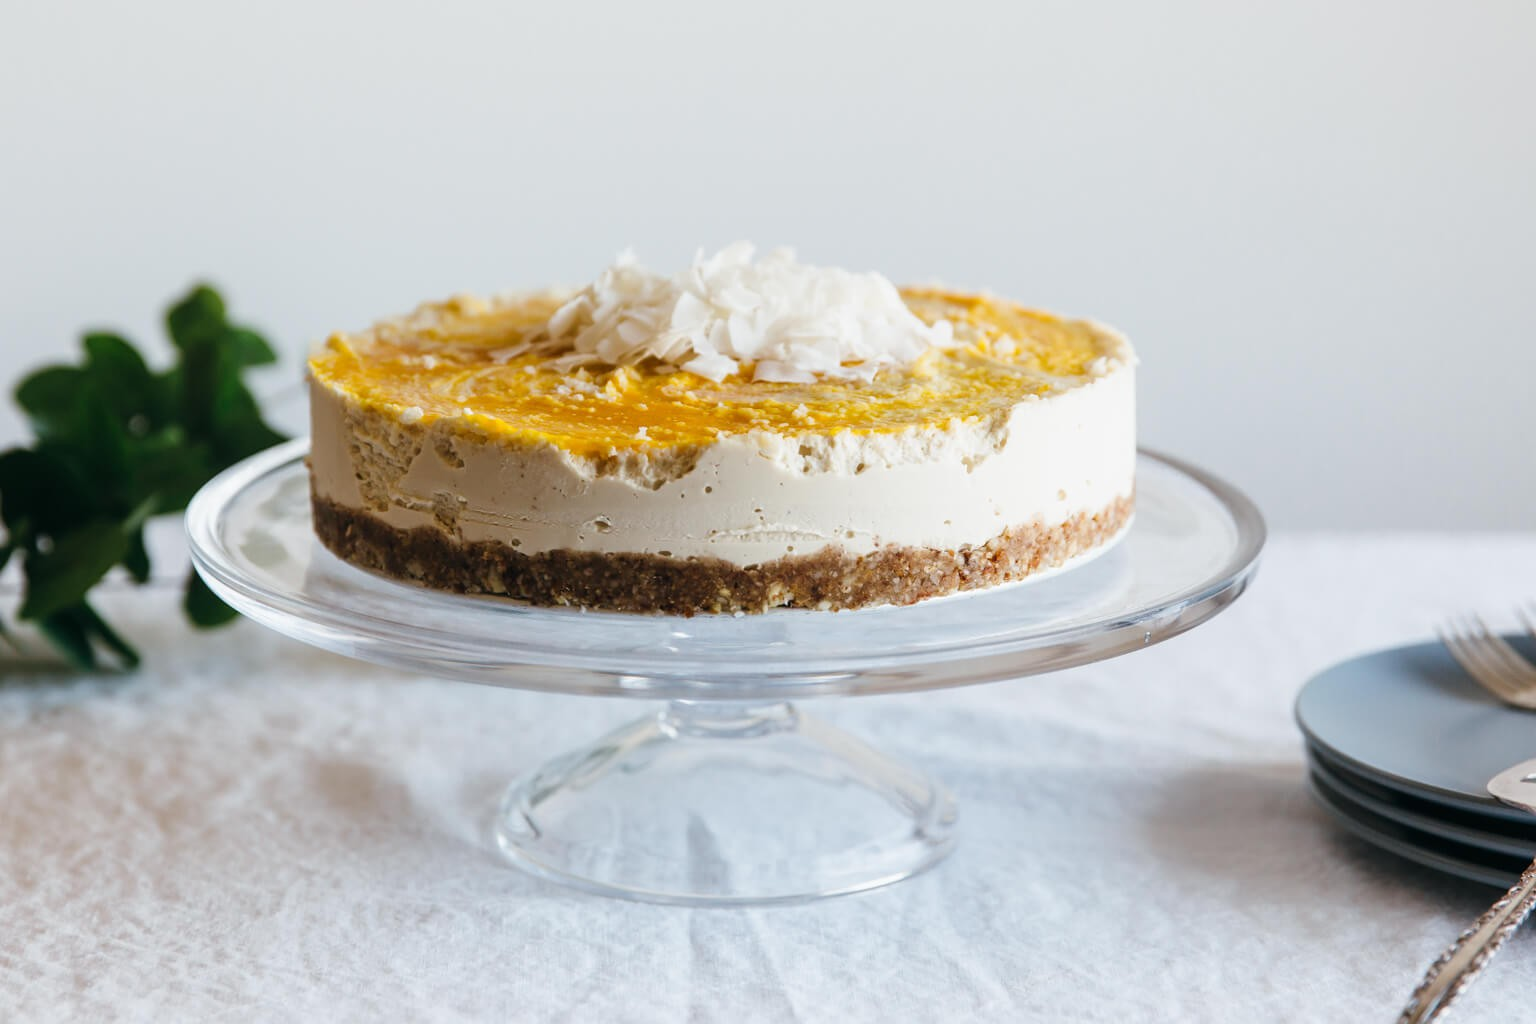 coconut-macadamia-and-mango-cheesecake-3.jpg